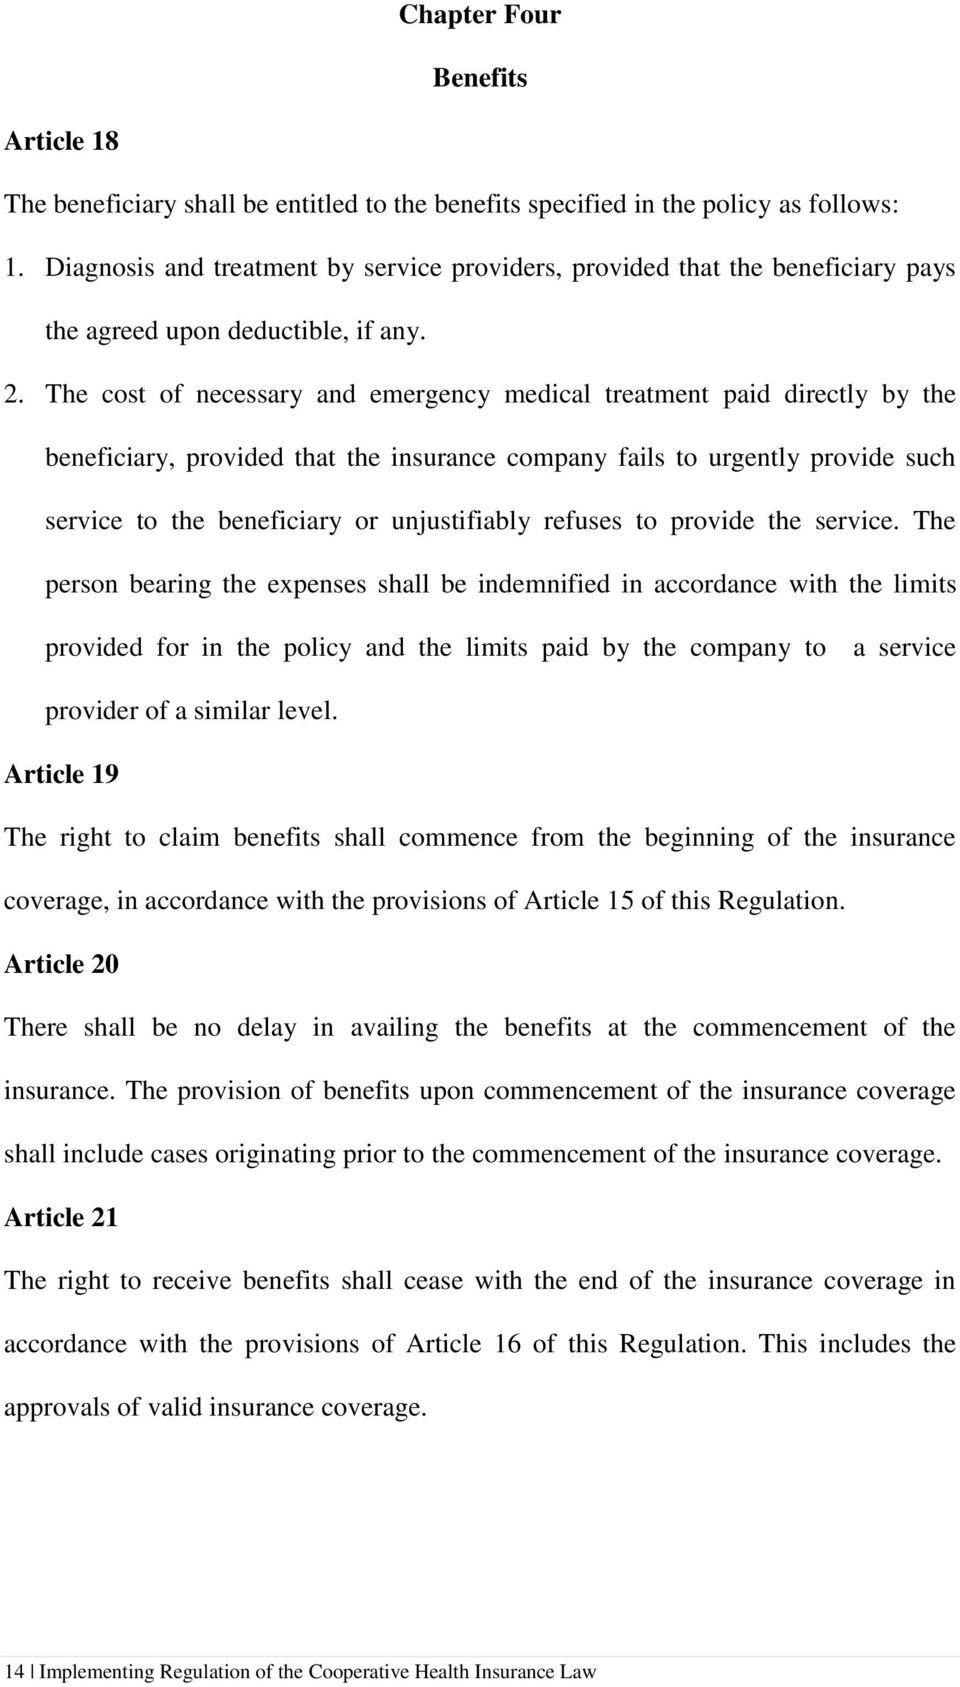 The cost of necessary and emergency medical treatment paid directly by the beneficiary, provided that the insurance company fails to urgently provide such service to the beneficiary or unjustifiably